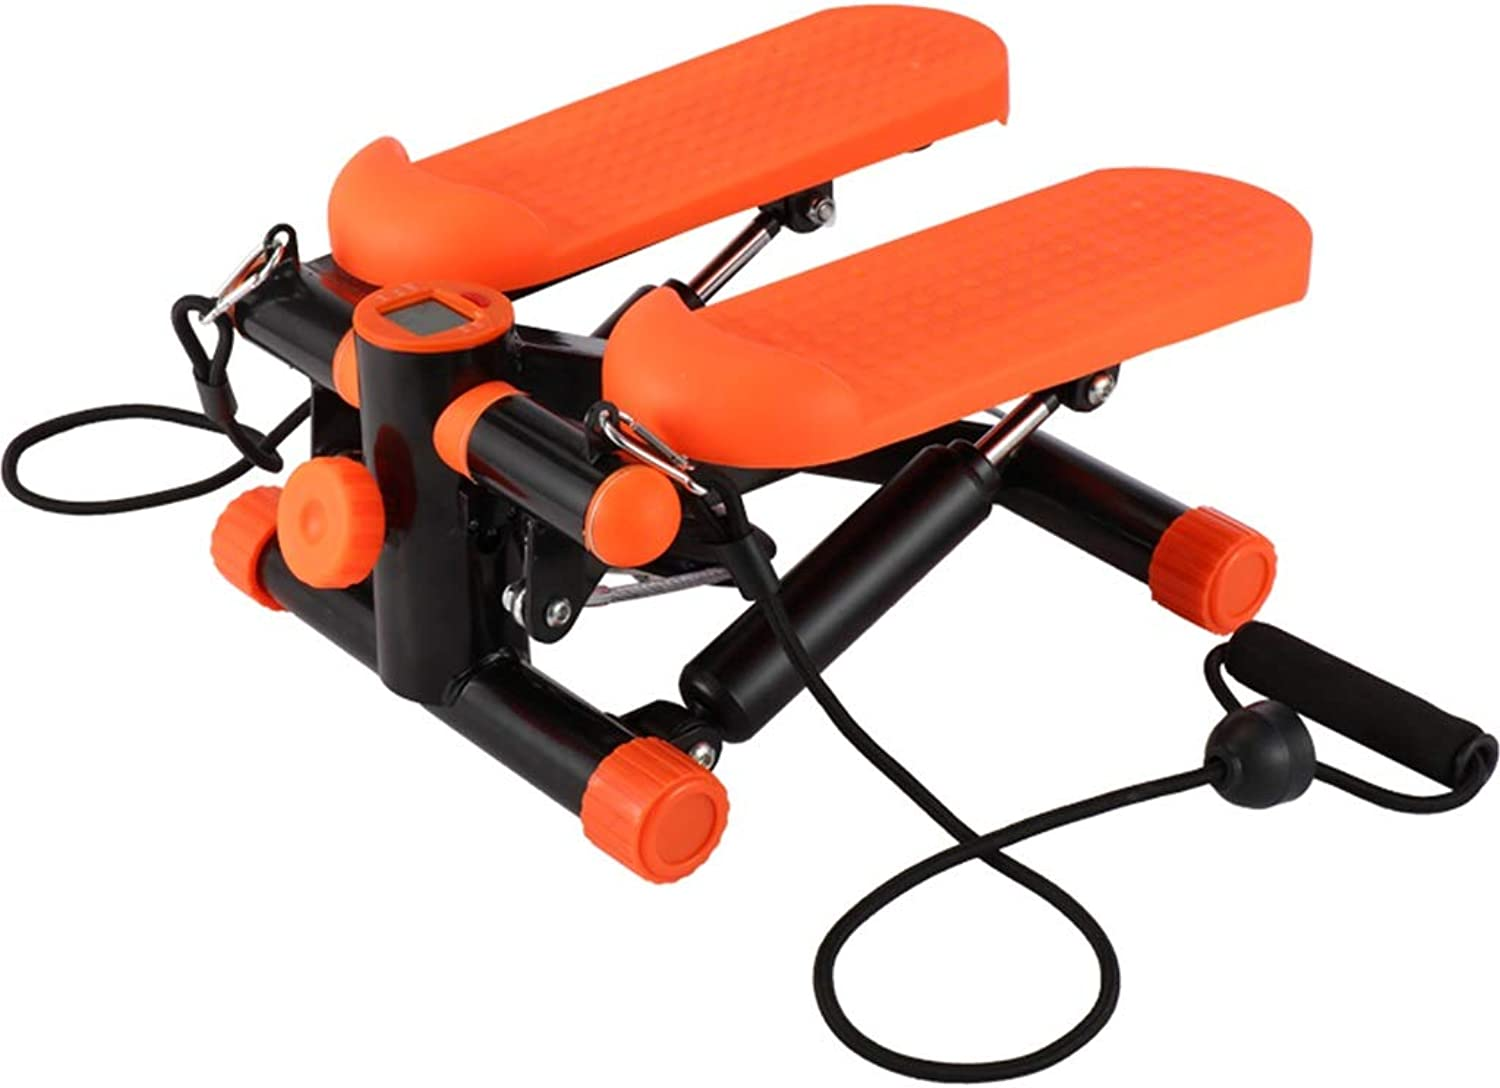 Pedal Sports Pedal Home Fitness Thin Waist Pedal MultiFunctional Fitness Equipment, Will Not Hurt The Knee (color   orange, Size   34  30  11cm)